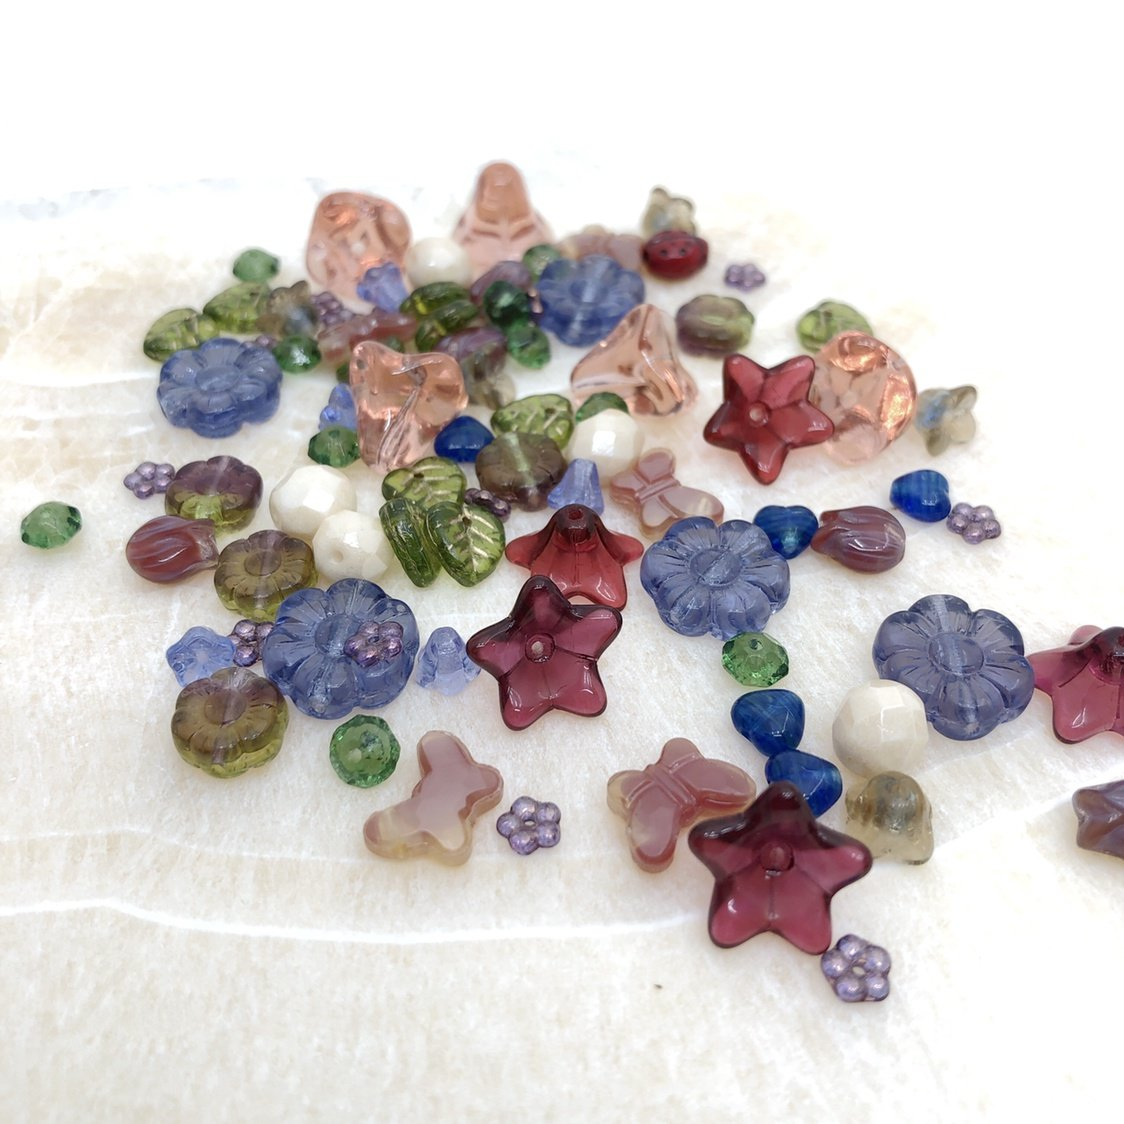 Flower & Leaf Glass Bead Mix - Autumn (80+ pcs.)